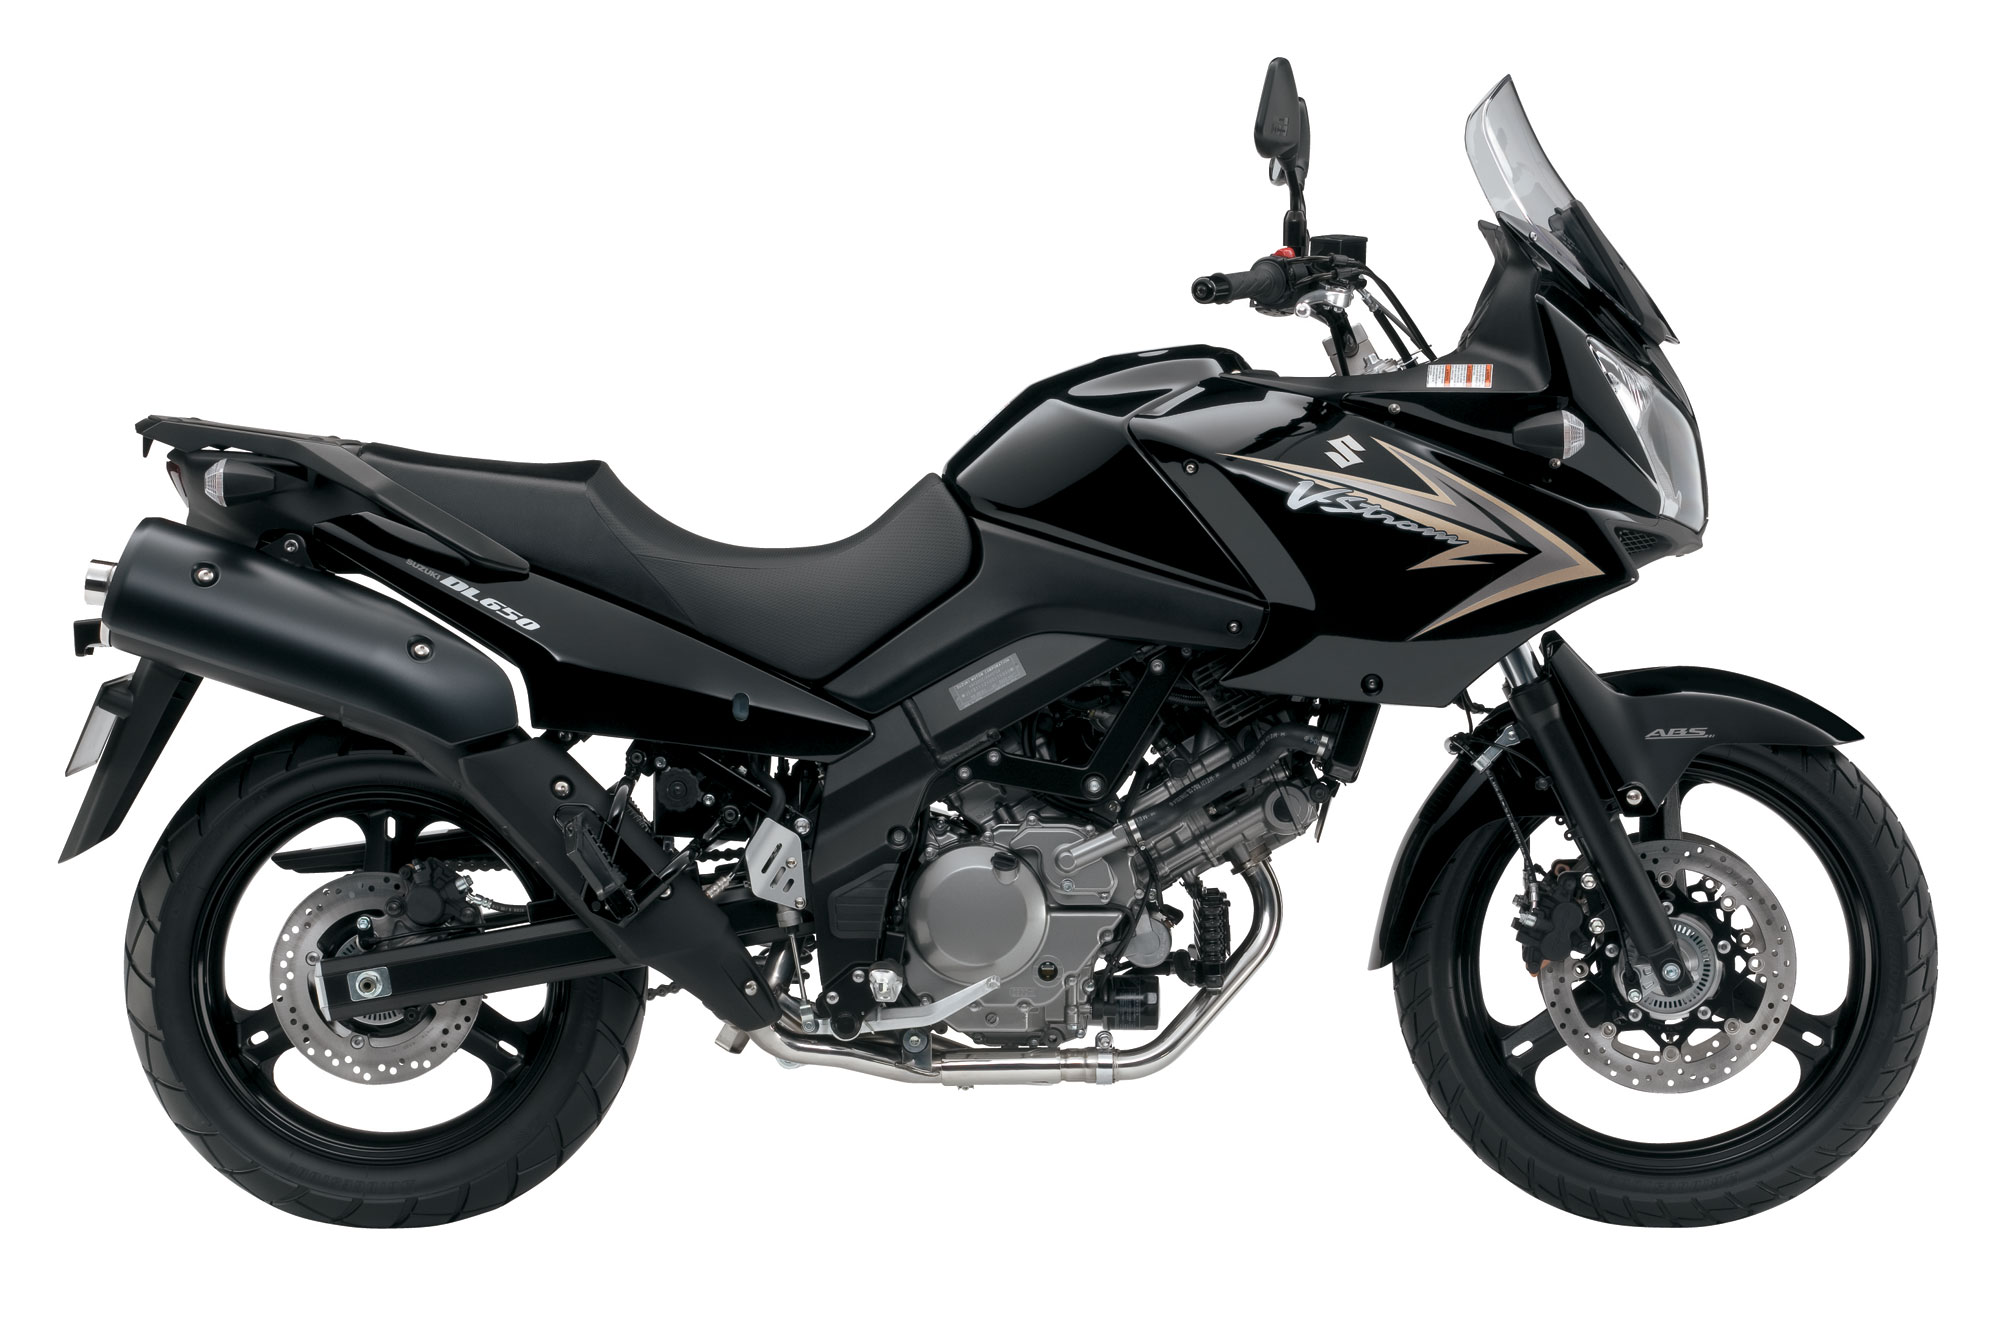 2011 Suzuki DL650 V-Strom Service Manual